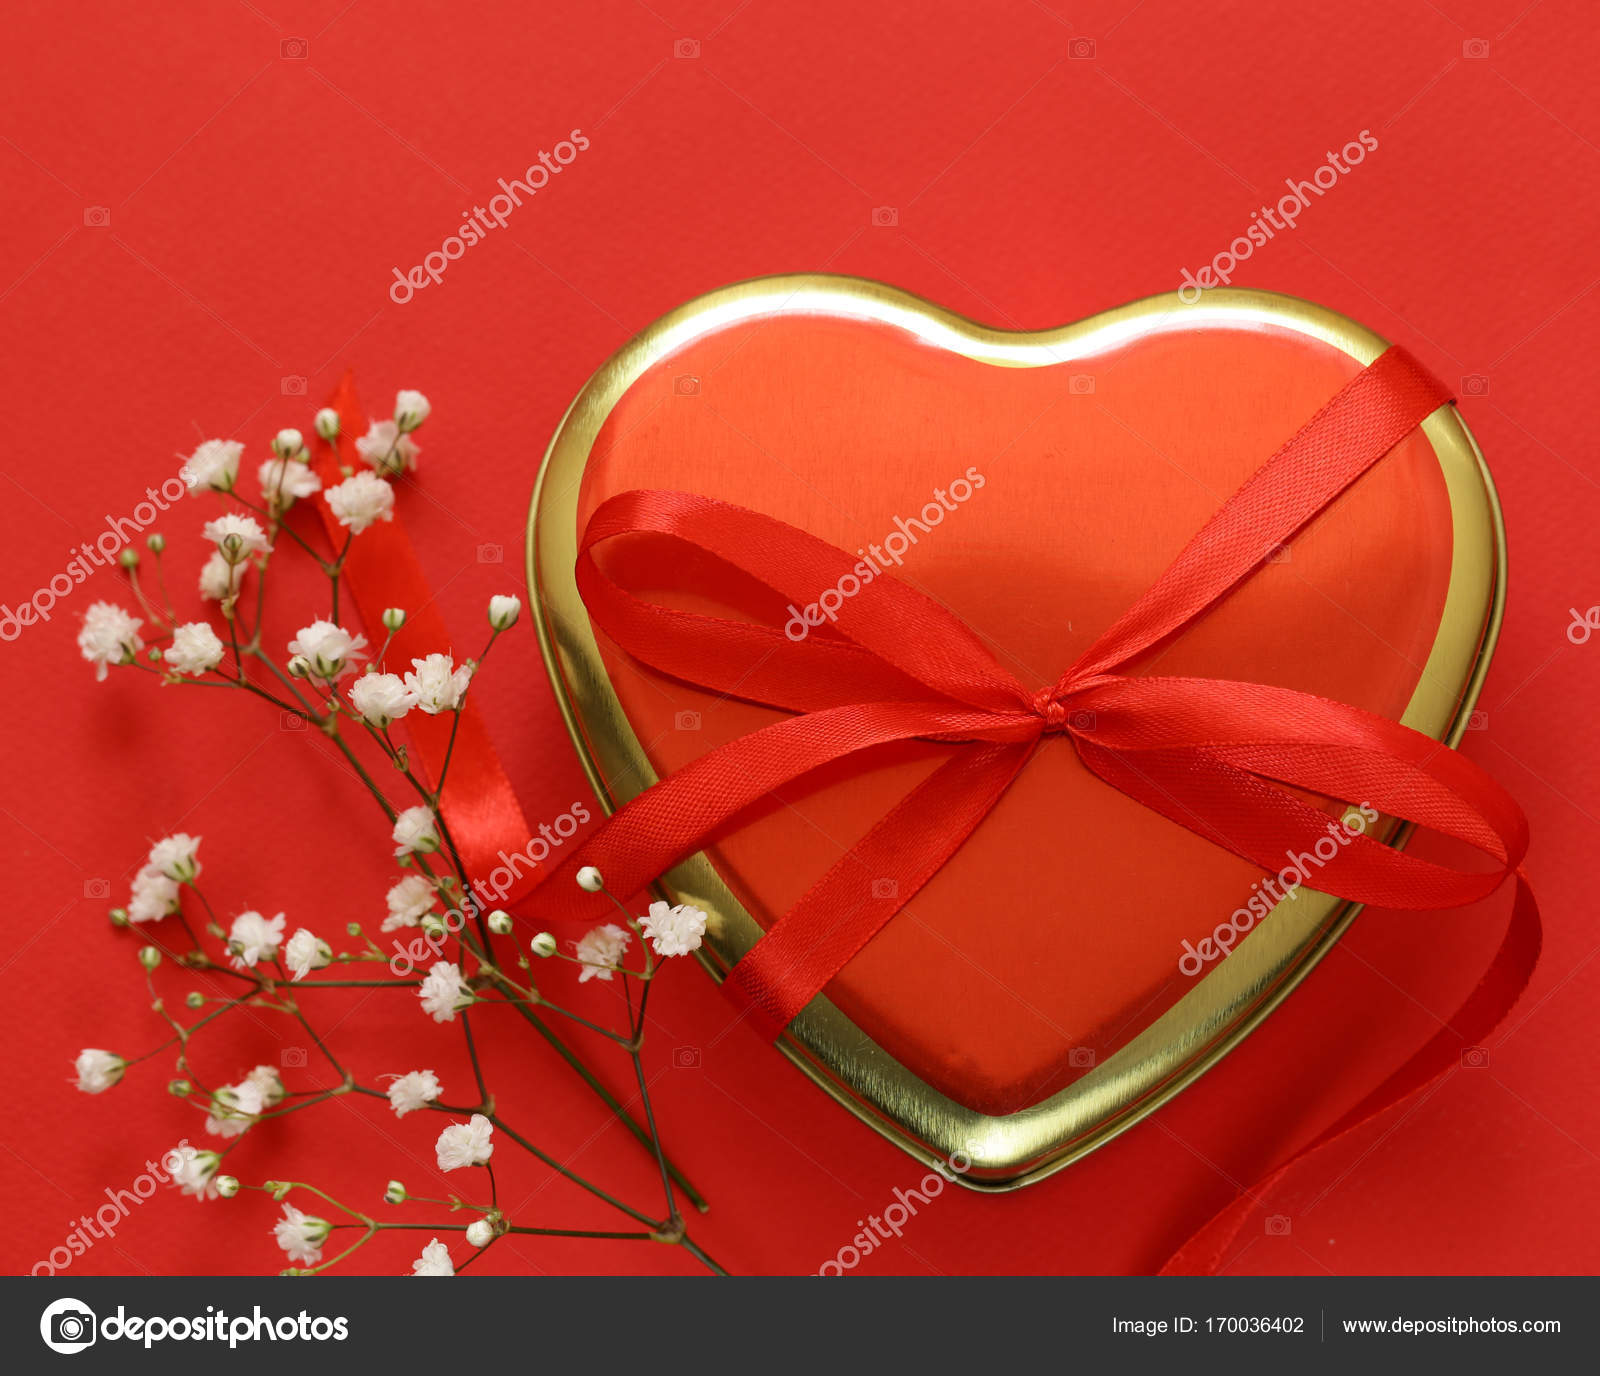 Happy valentines day holiday flowers and hearts love symbols happy valentines day holiday flowers and hearts love symbols stock photo biocorpaavc